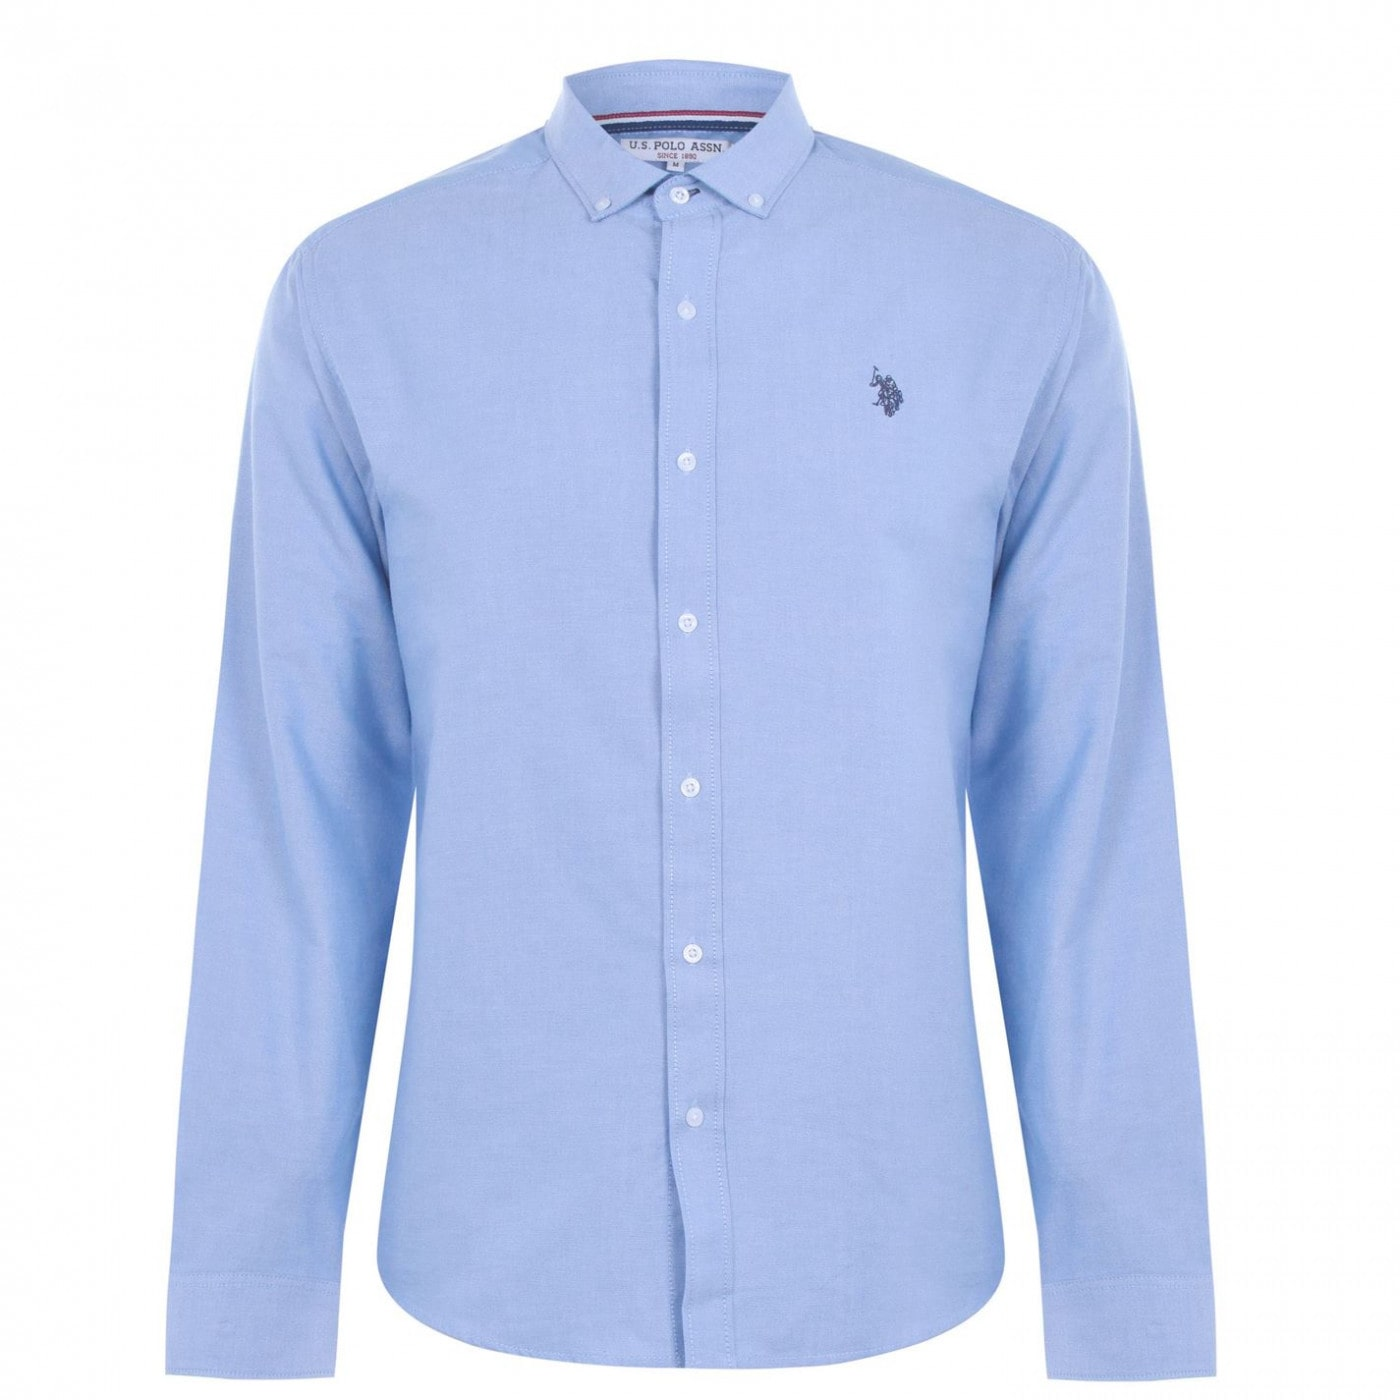 US Polo Assn Oxford Shirt